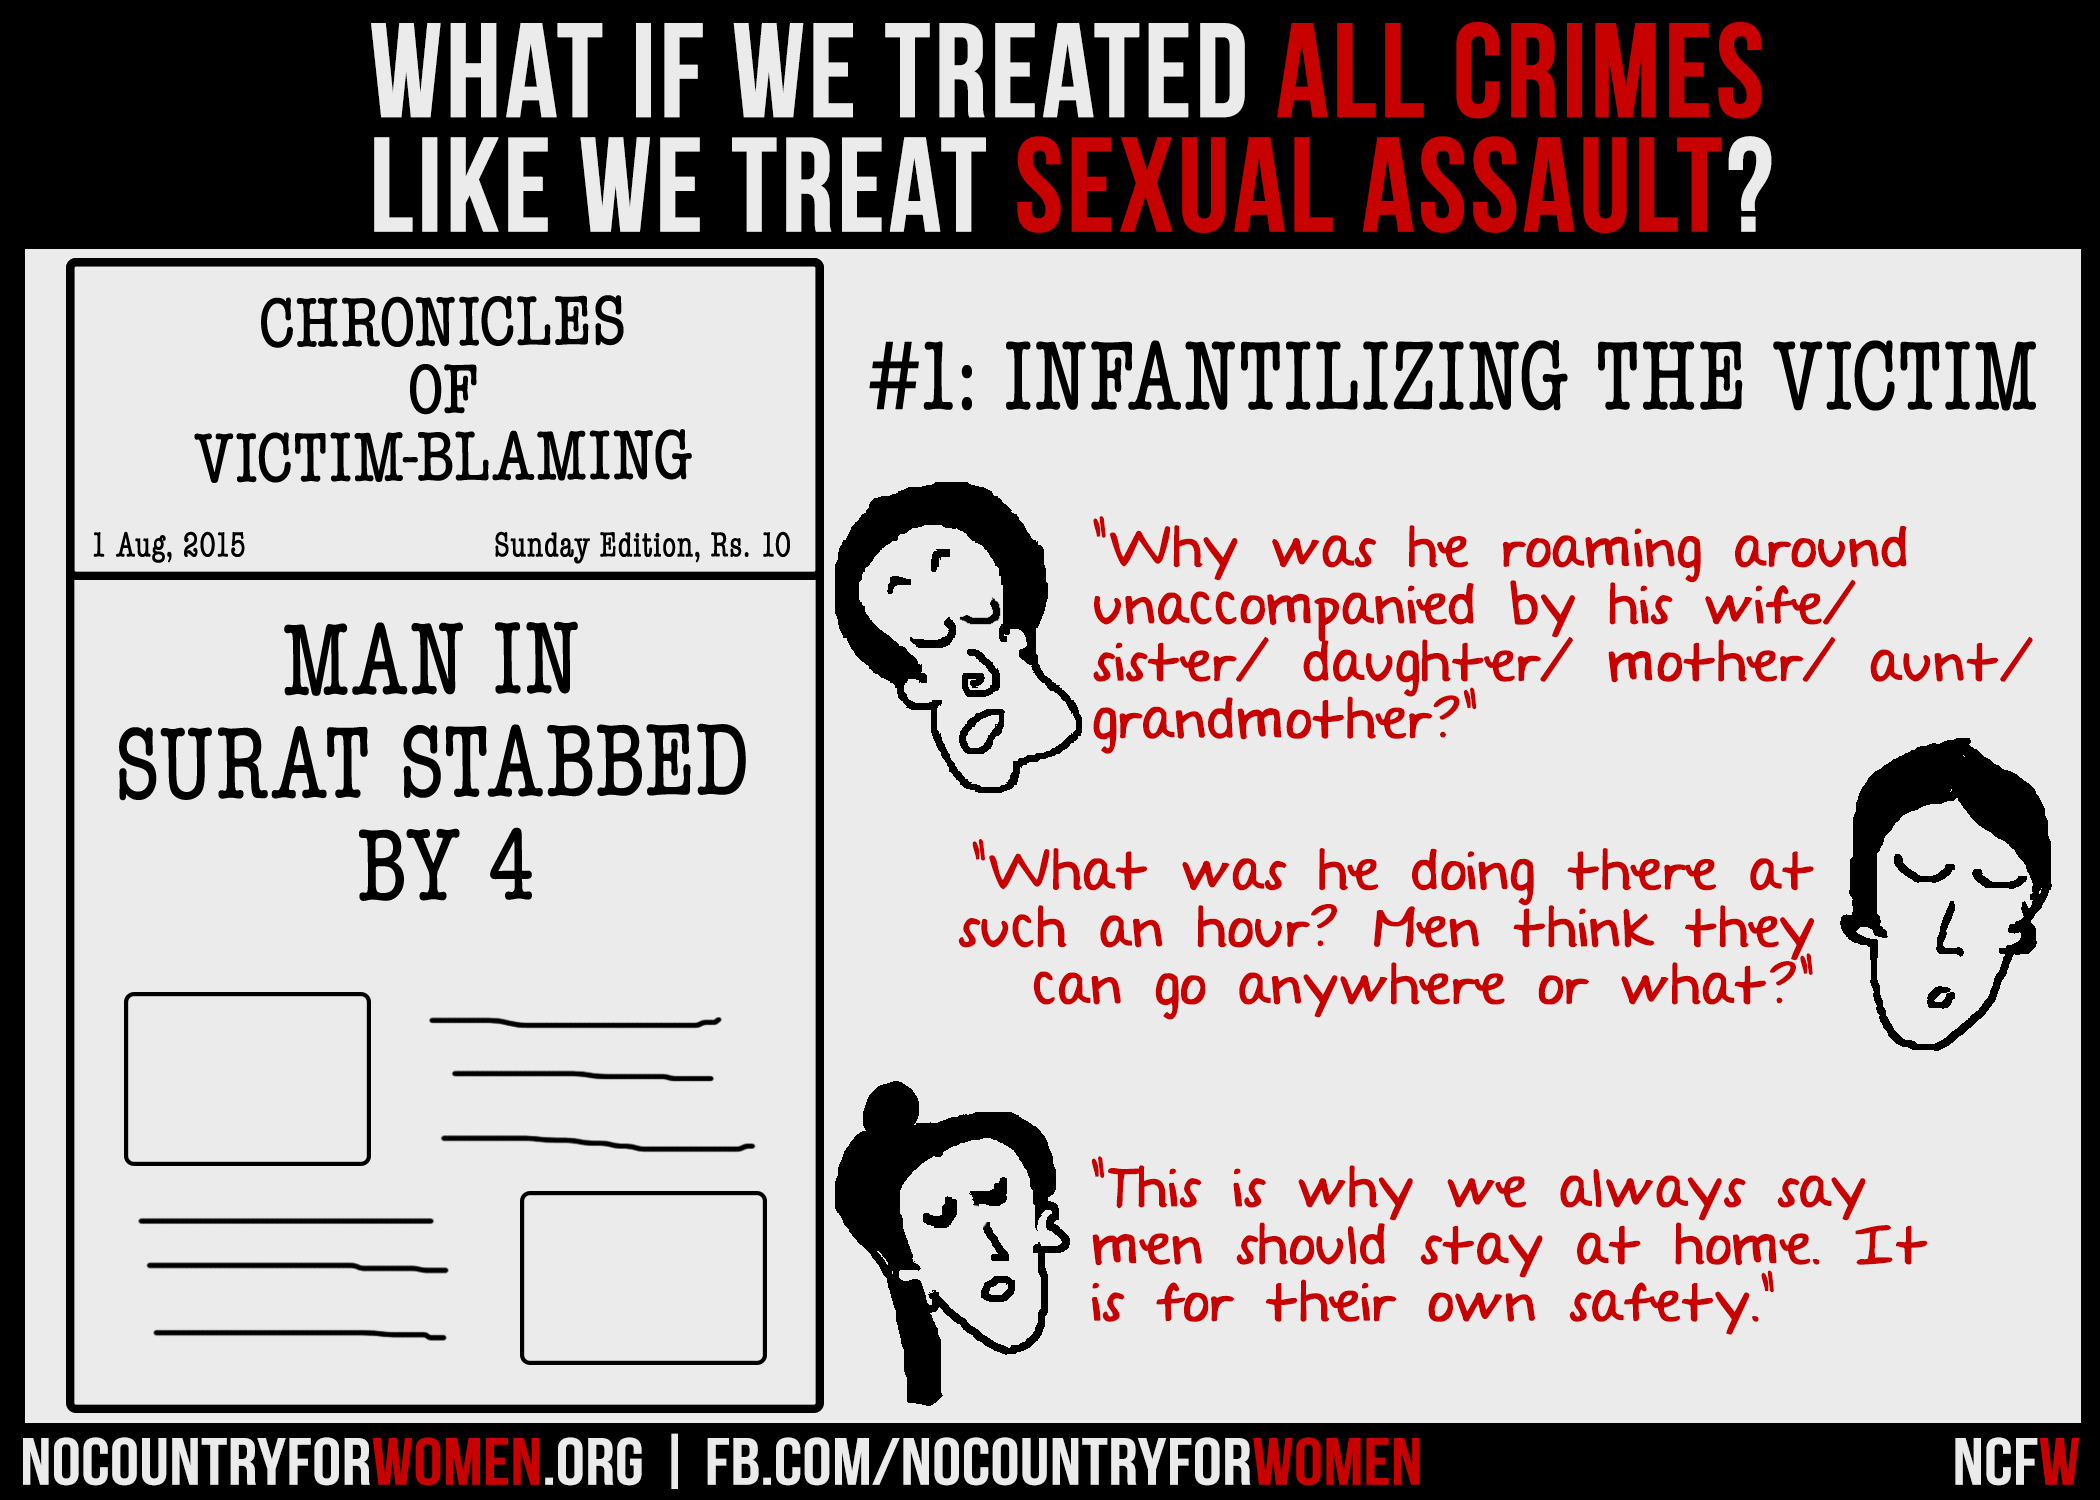 What If We Treated All Crimes Like We Treat Sexual Assault?